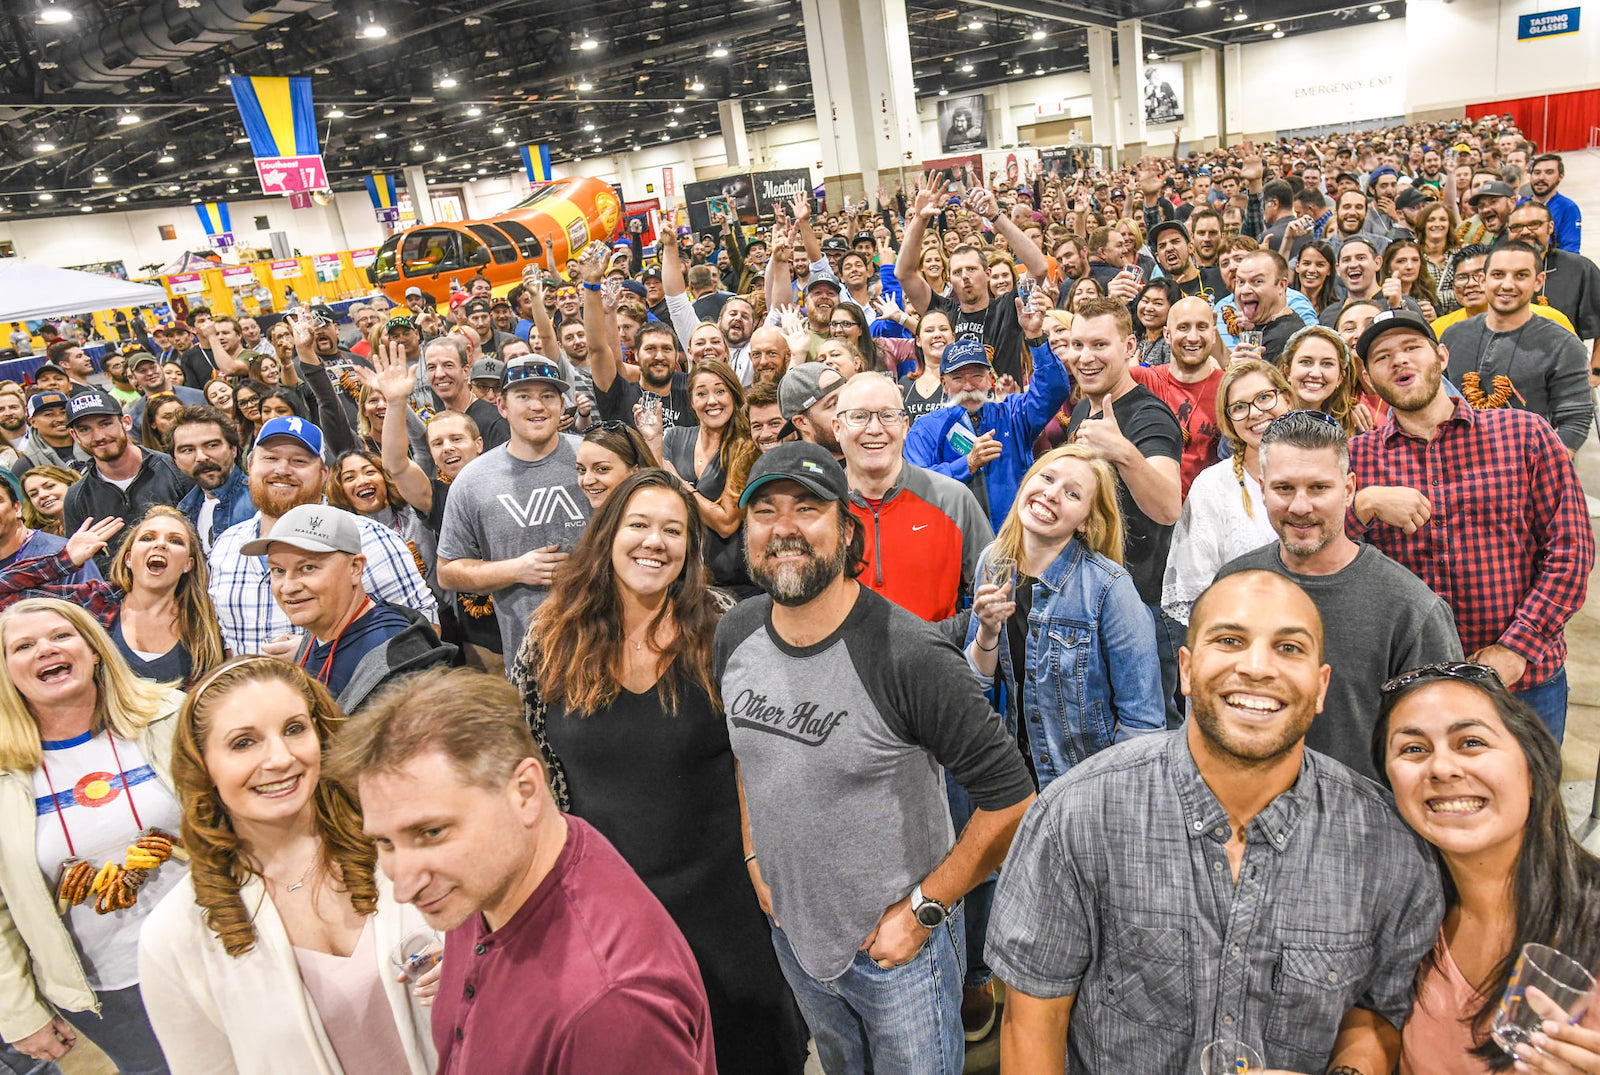 Image of the crowd at the Great American Beer Festival in Colorado